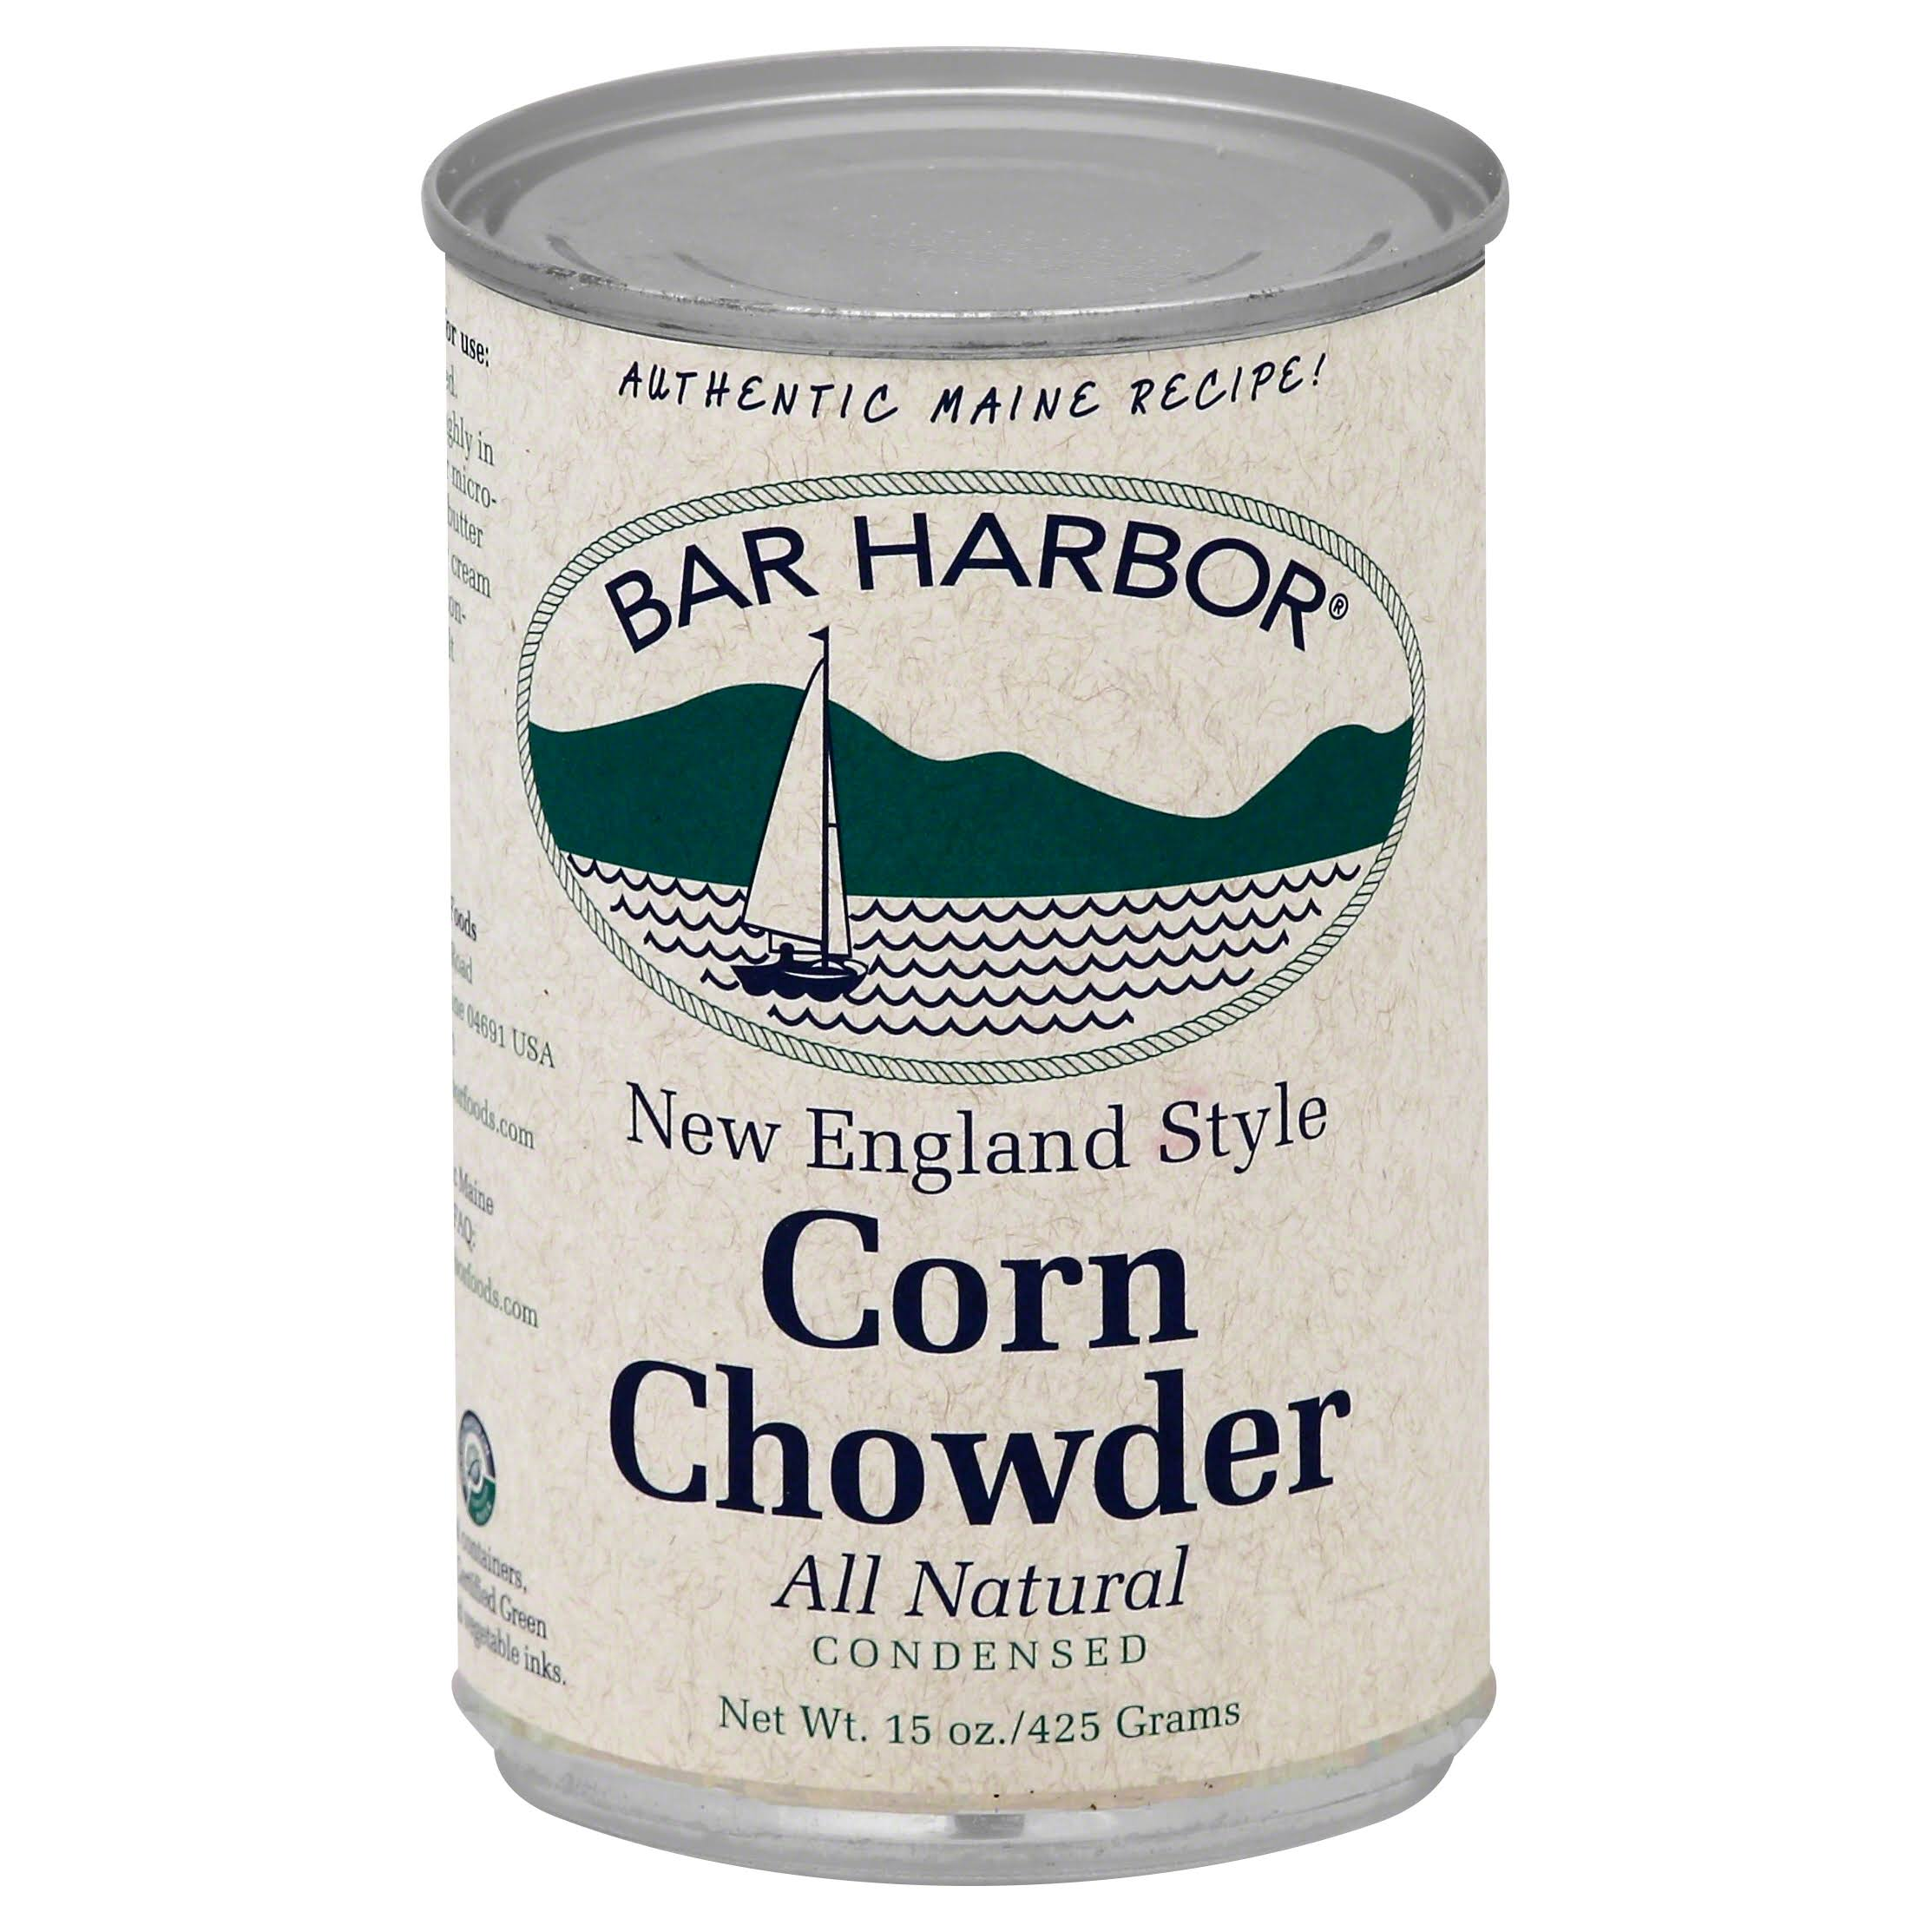 Bar Harbor Corn Chowder